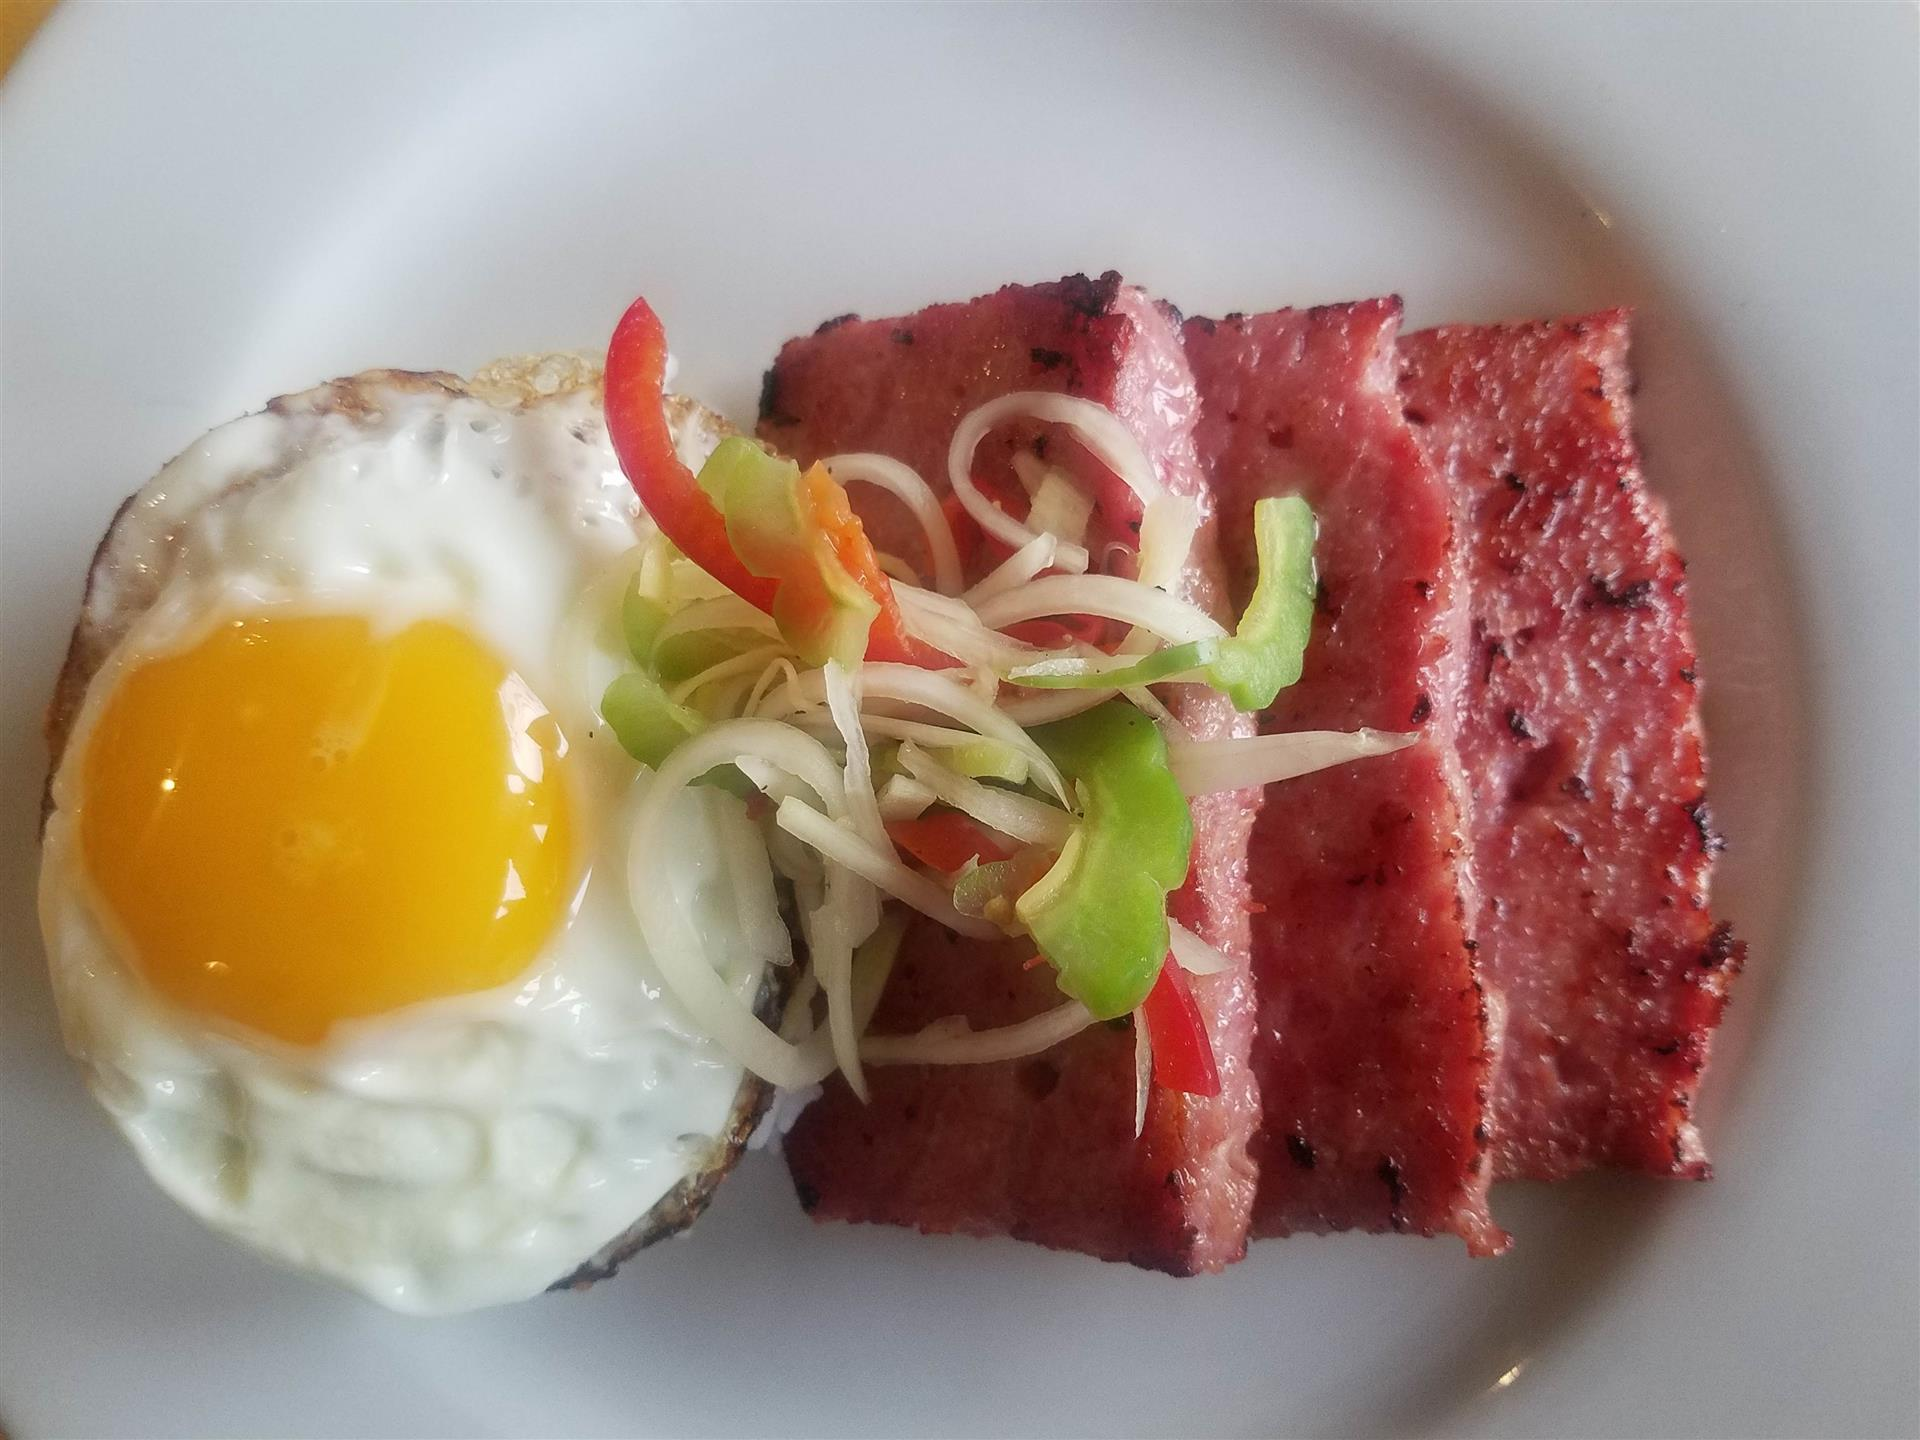 spam and a fried egg